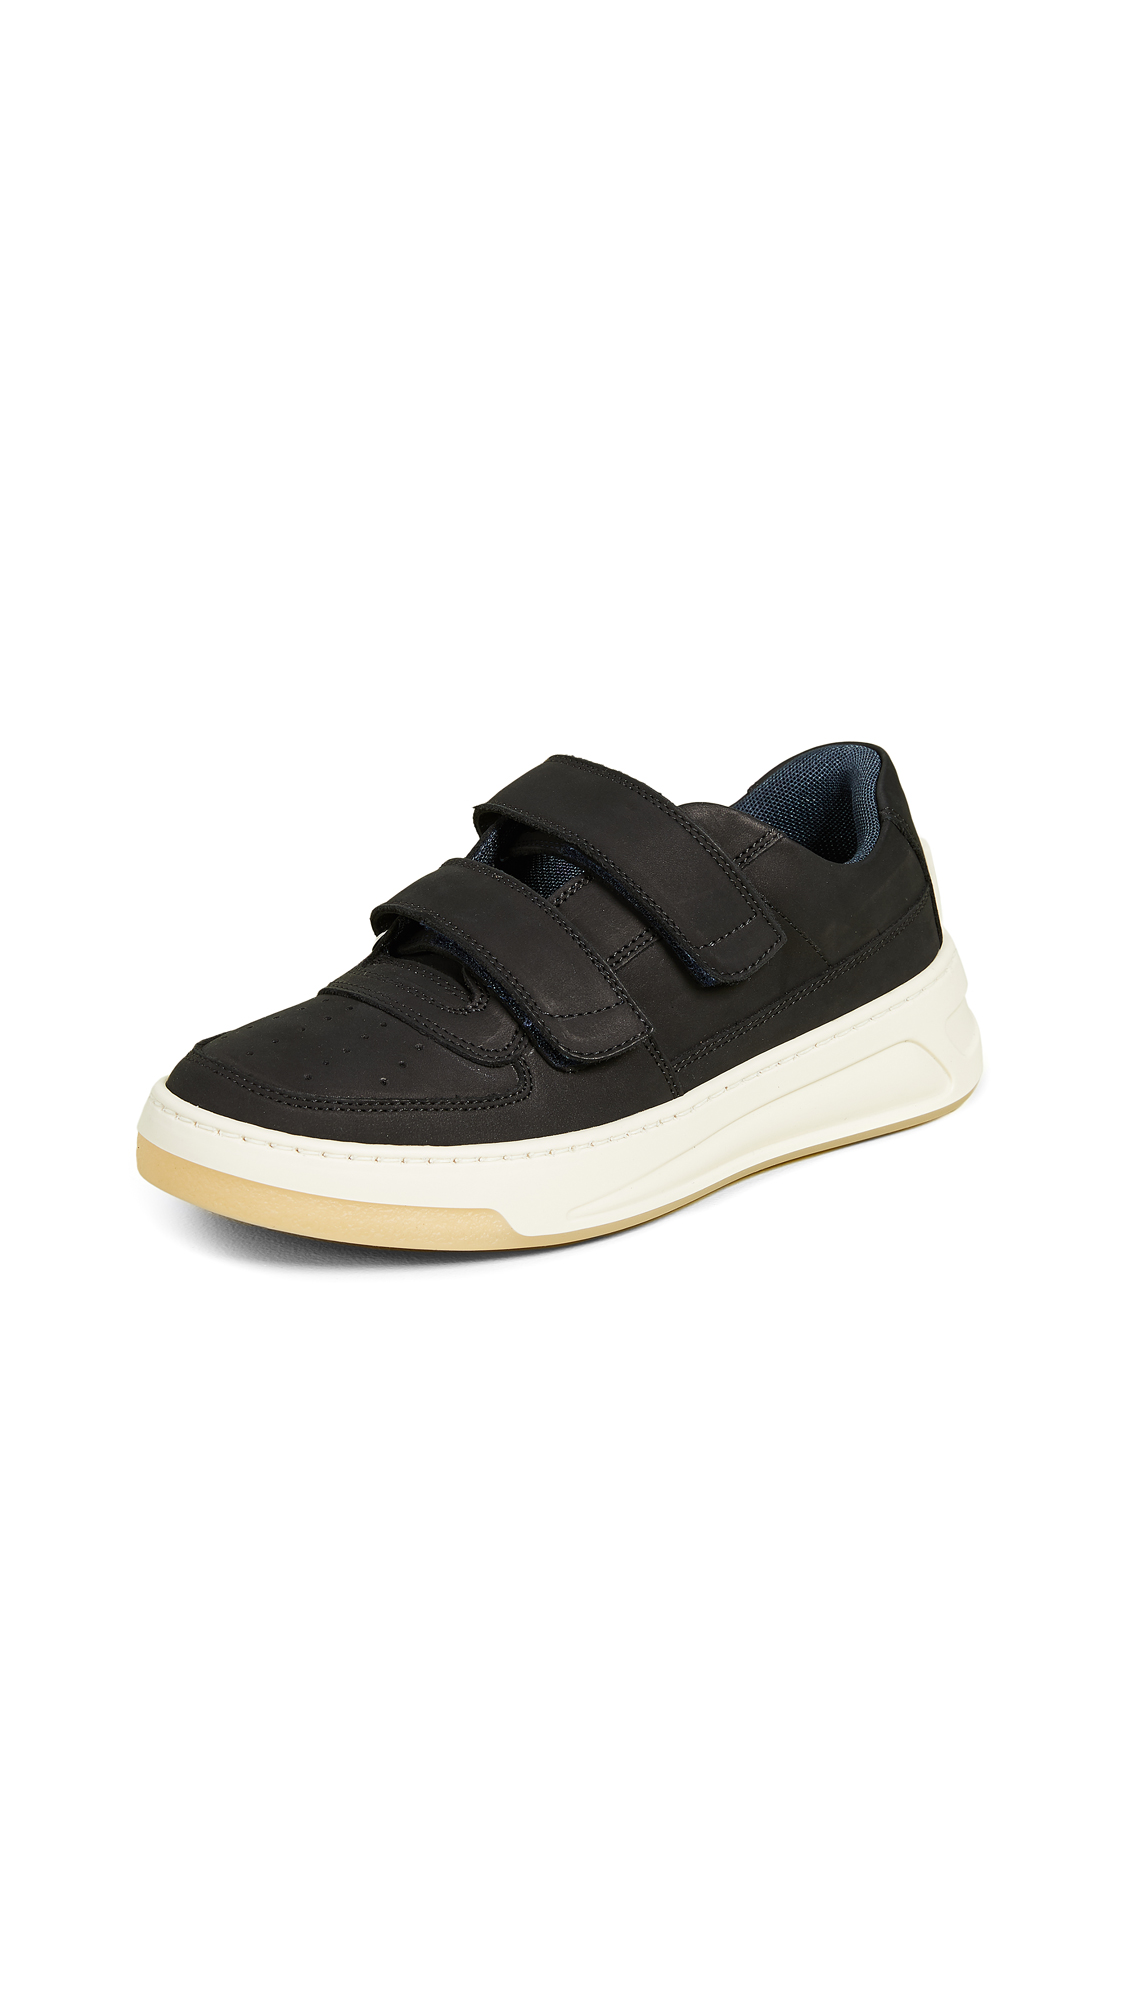 Photo of Acne Studios Steffey Nubuck Sneakers online shoes sales